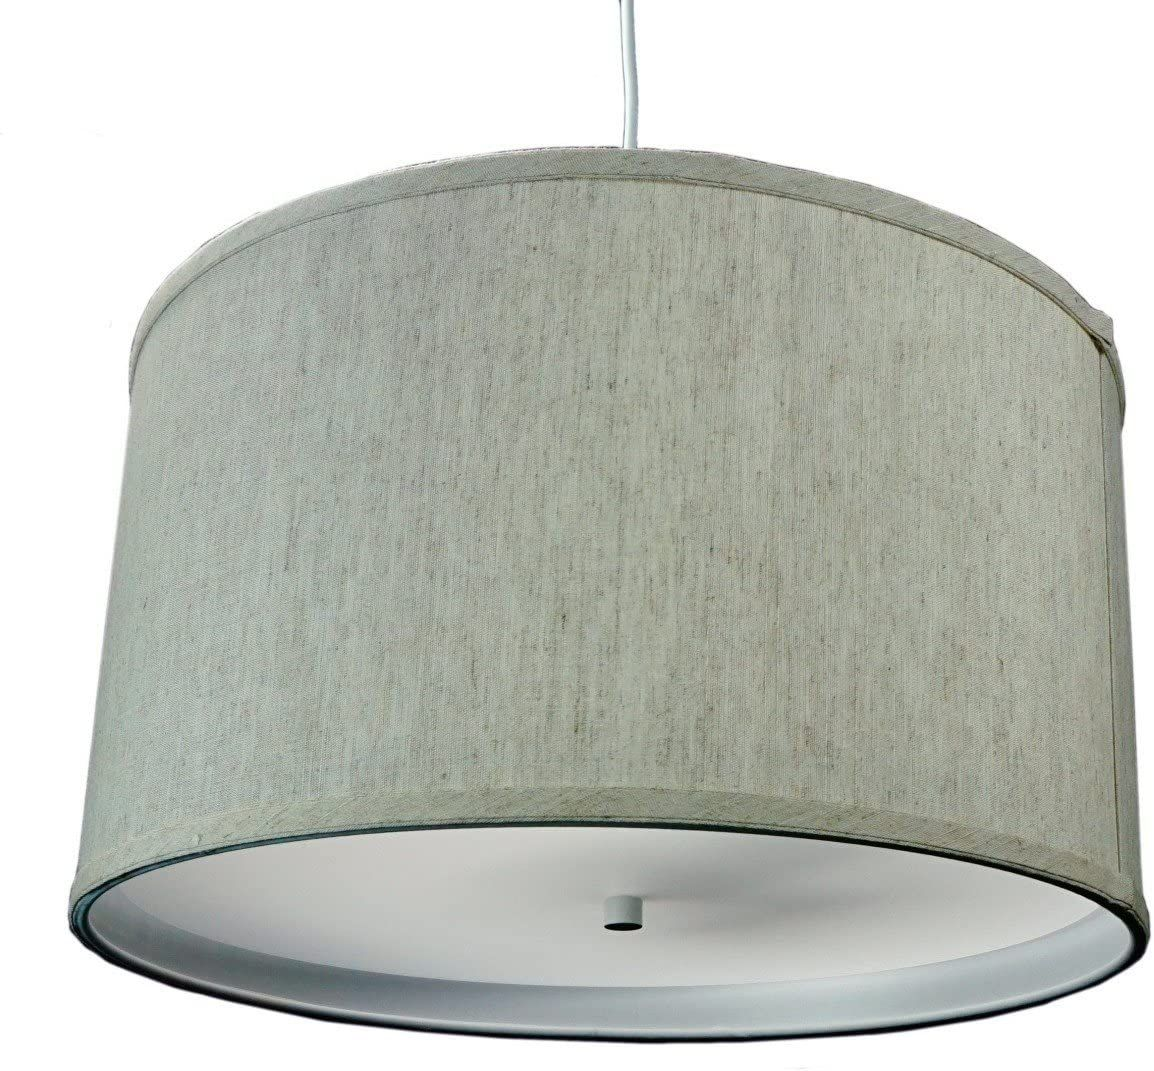 HomeConcept SDW181810DRTO Textured Oatmeal 2 Light Swag Plug-in Pendant with Diffuser - Tools & Home Improvement - Lighting & Ceiling Fans - Ceiling Lights - Pendant Lights #lighting #lights